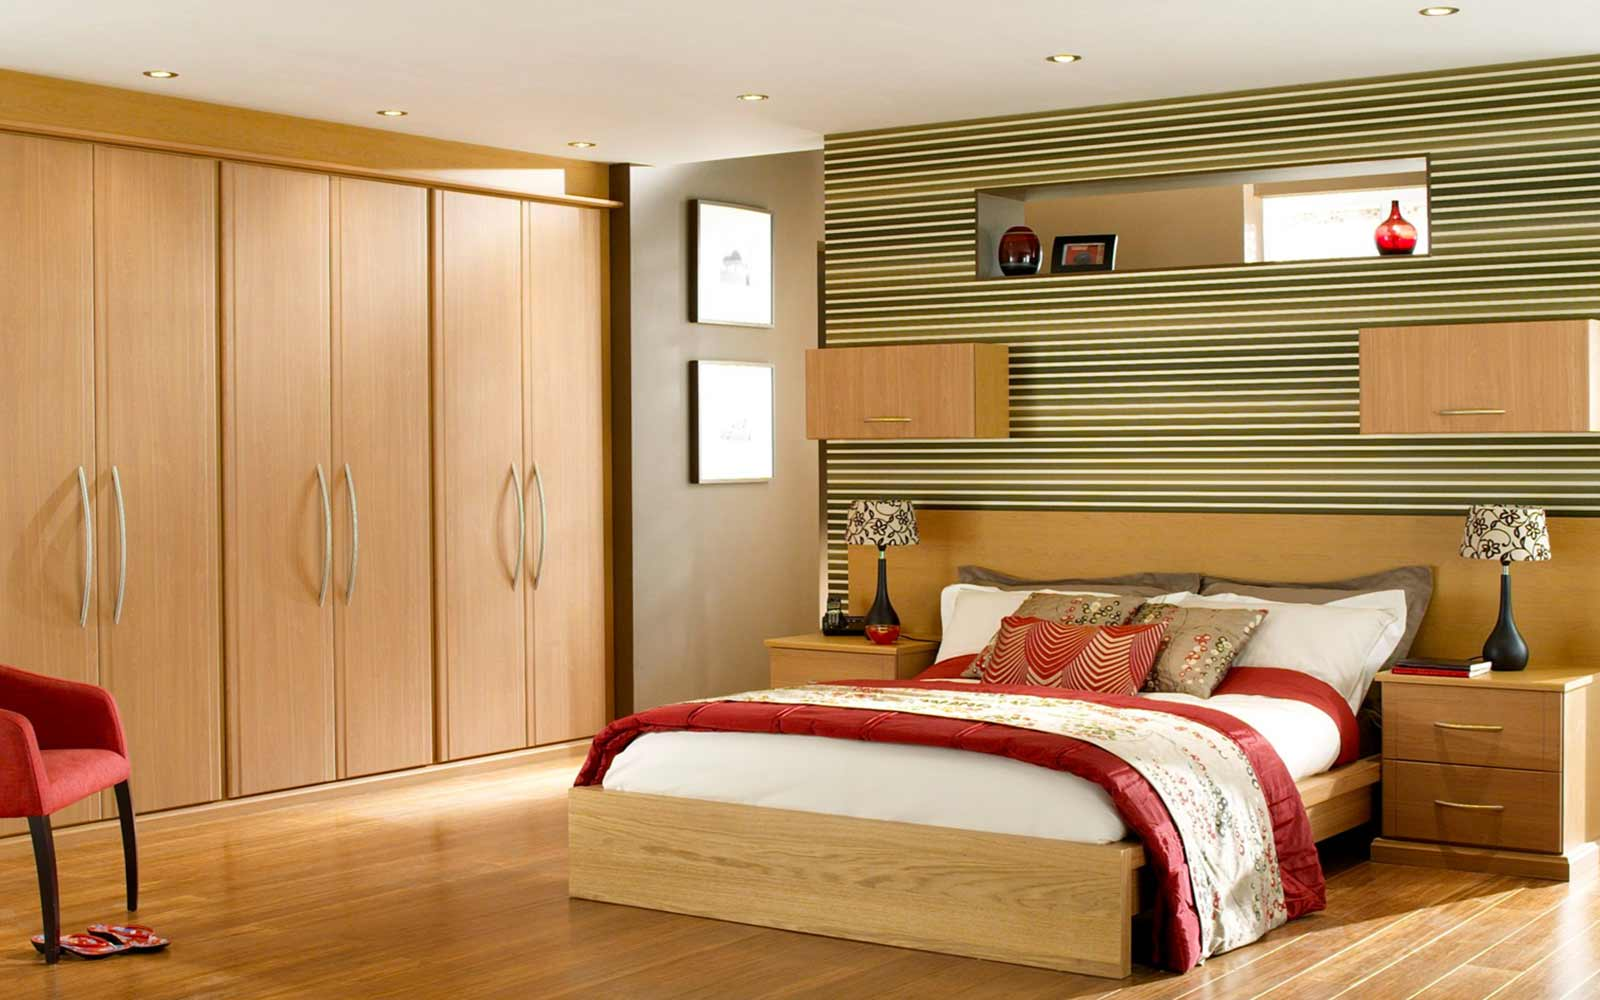 Bedroom Design Ideas Images 35 43 Images Of Wardrobe Designs For Bedrooms